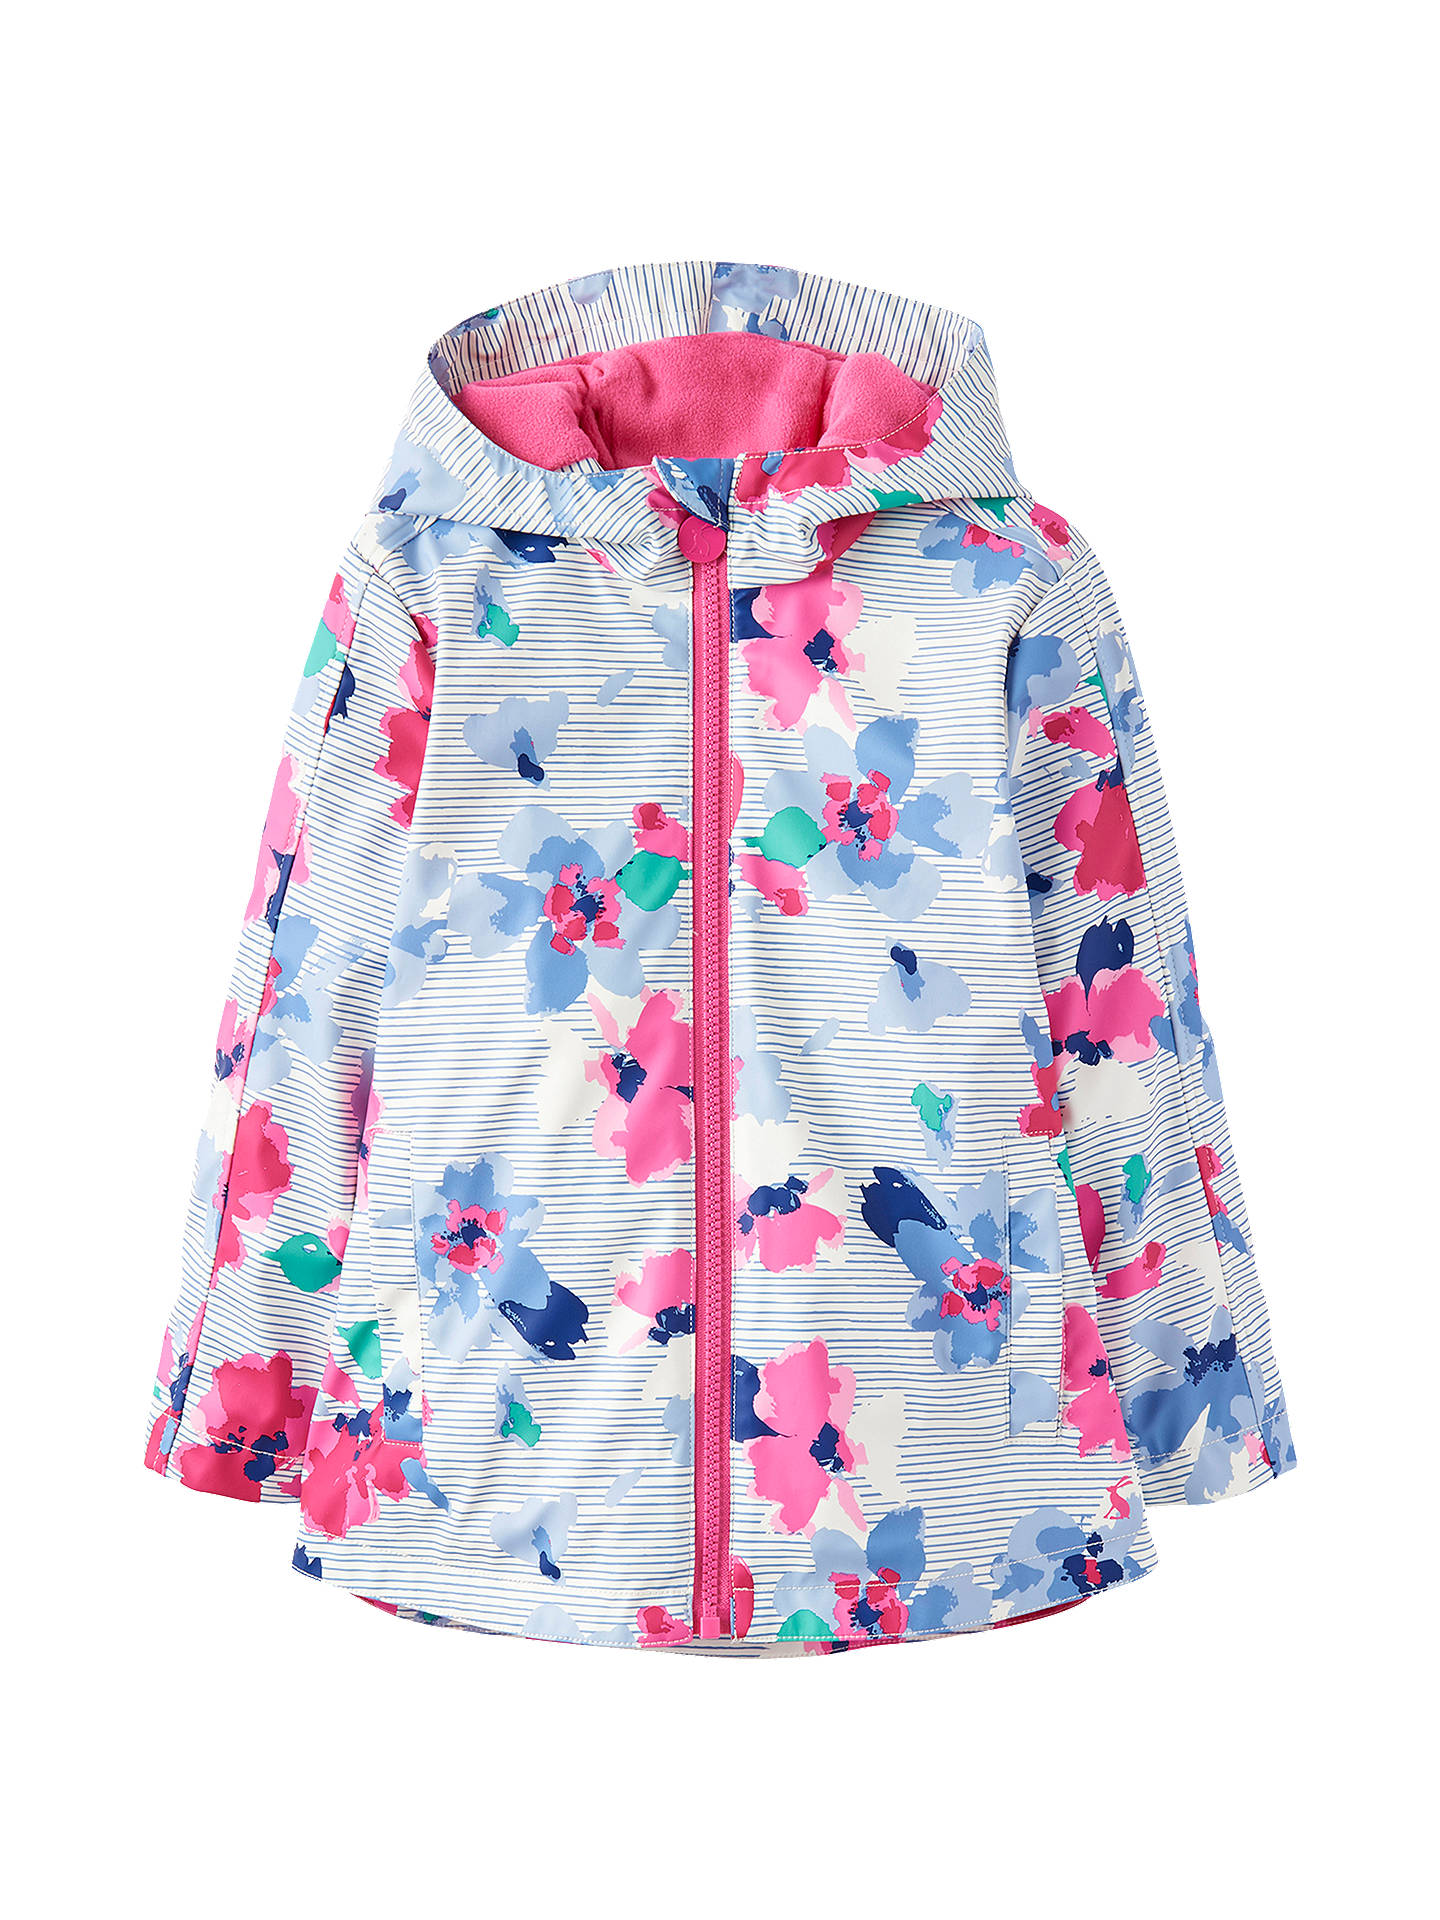 efdd7bcf6708 Little Joule Girls  Rain Dance Floral Stripe Coat